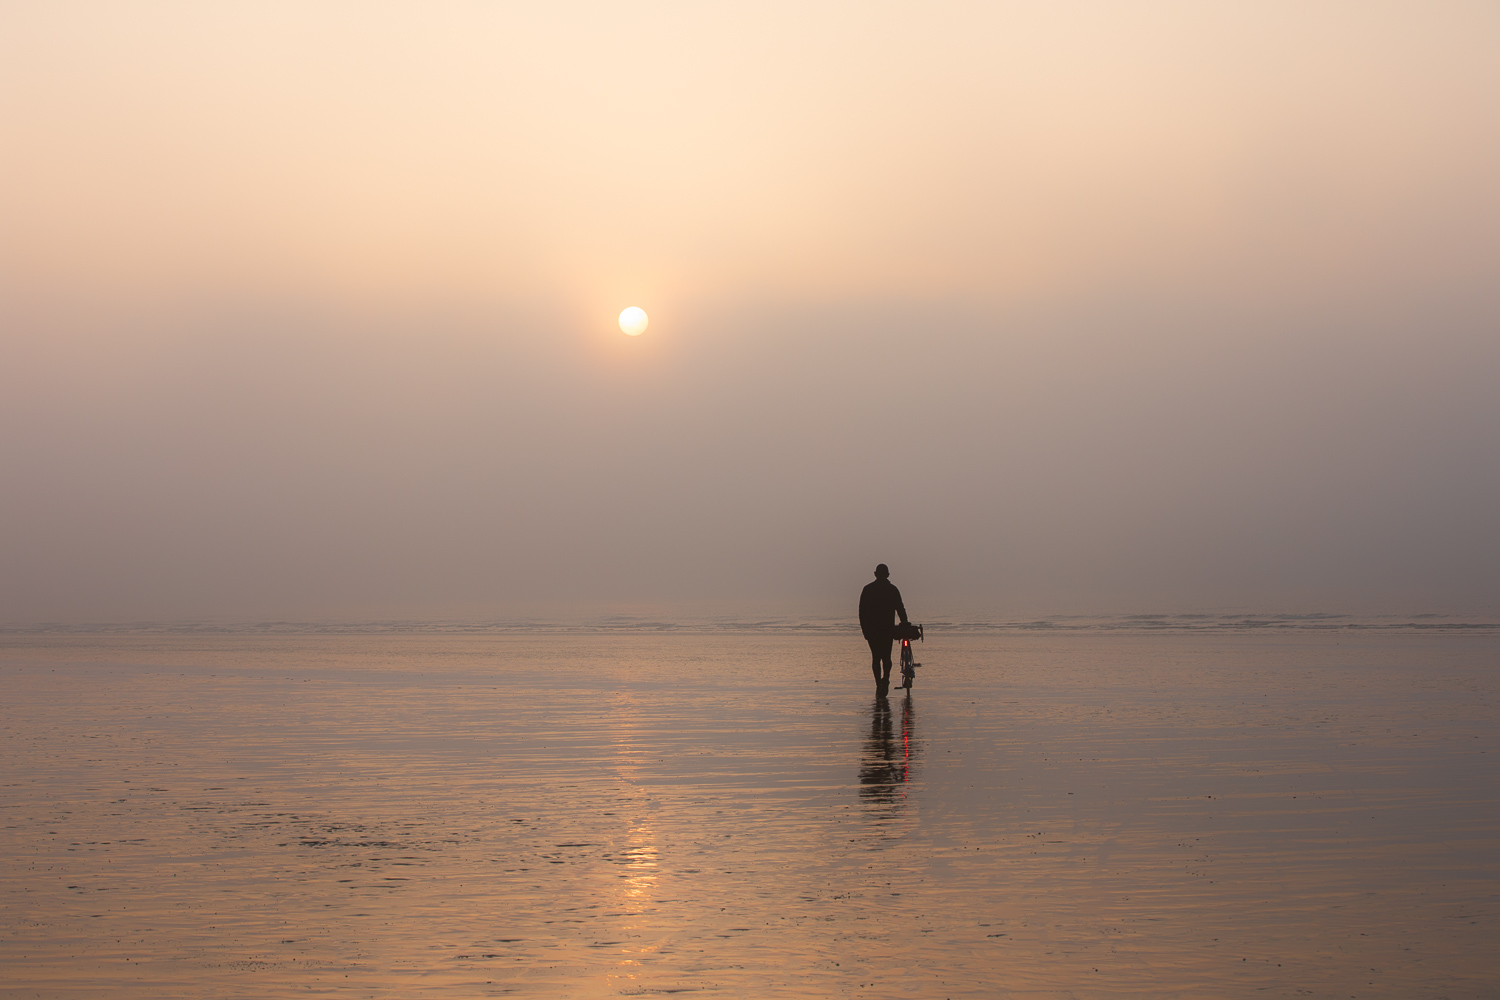 Man with bicycle walking into misty sunrise on shimmering sands